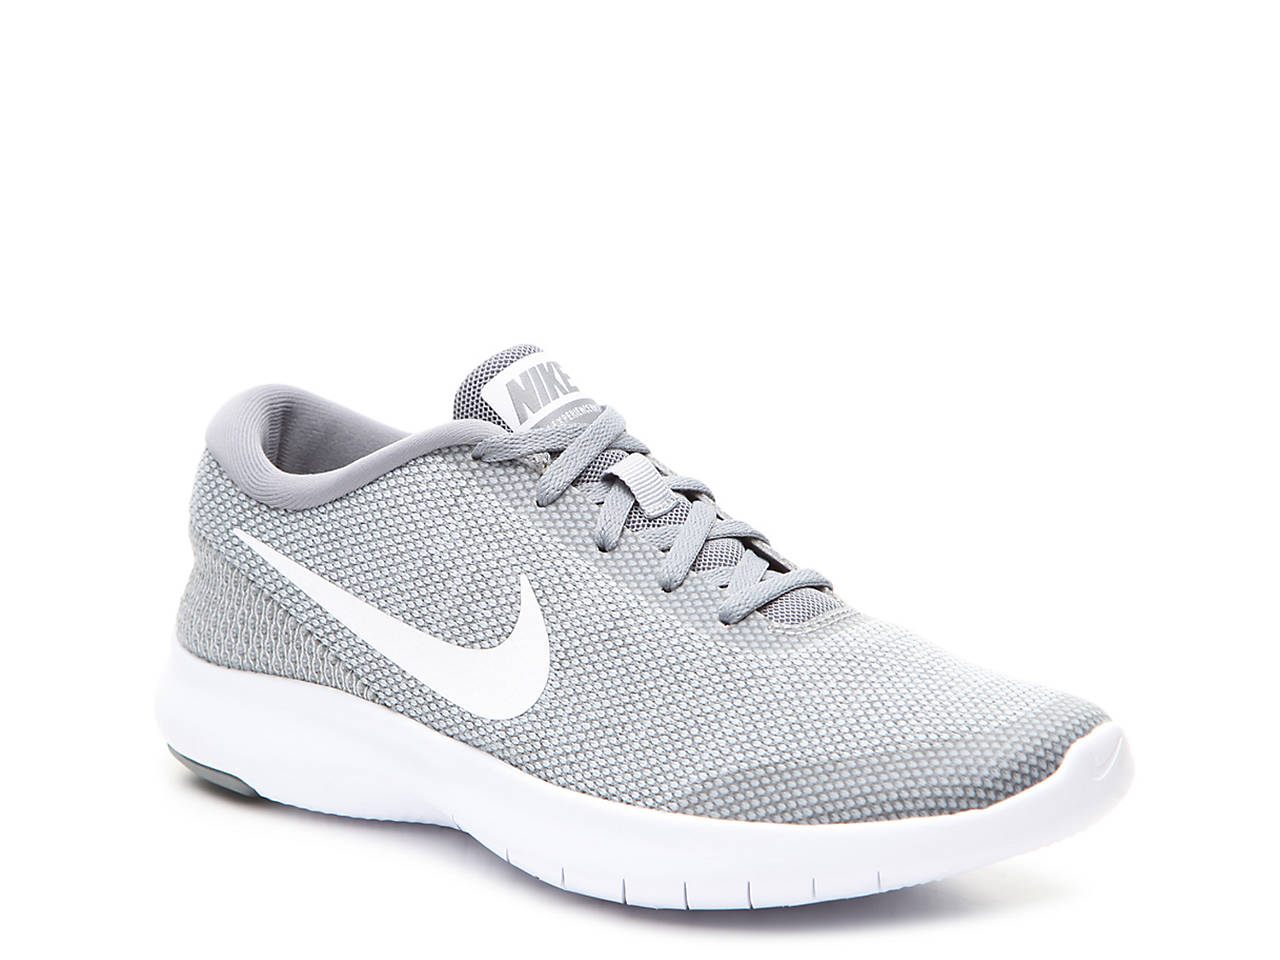 separation shoes d7b0c f18ce Nike. Flex Experience RN 7 Lightweight Running Shoe - Women s